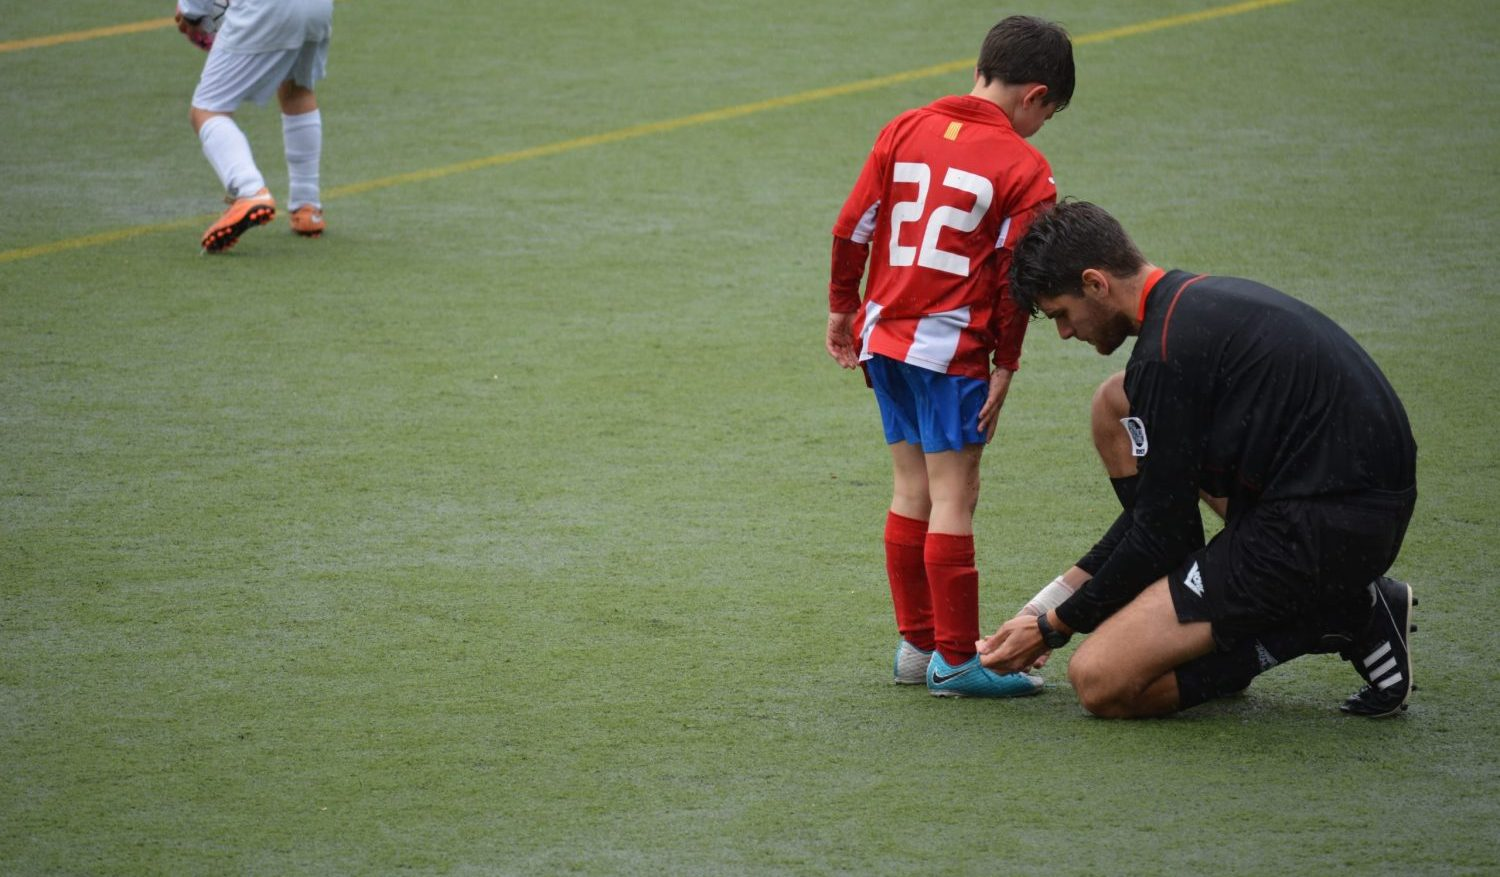 How to Become a Soccer Referee and Make Money